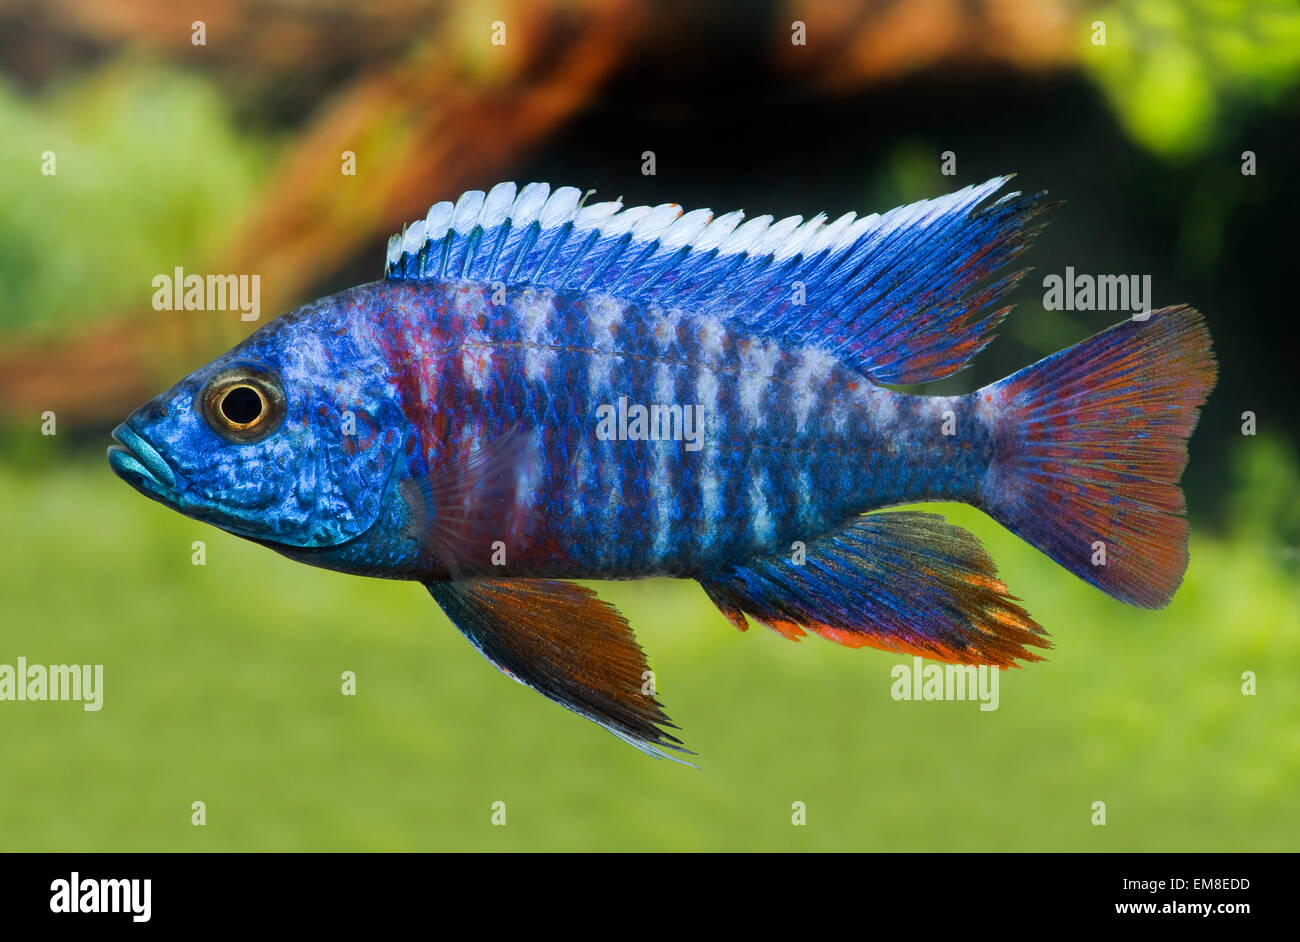 Aulonocara stuartgranti,Grants Malawi-Buntbarsch,Grant's Malawi-Cichlid Stock Photo